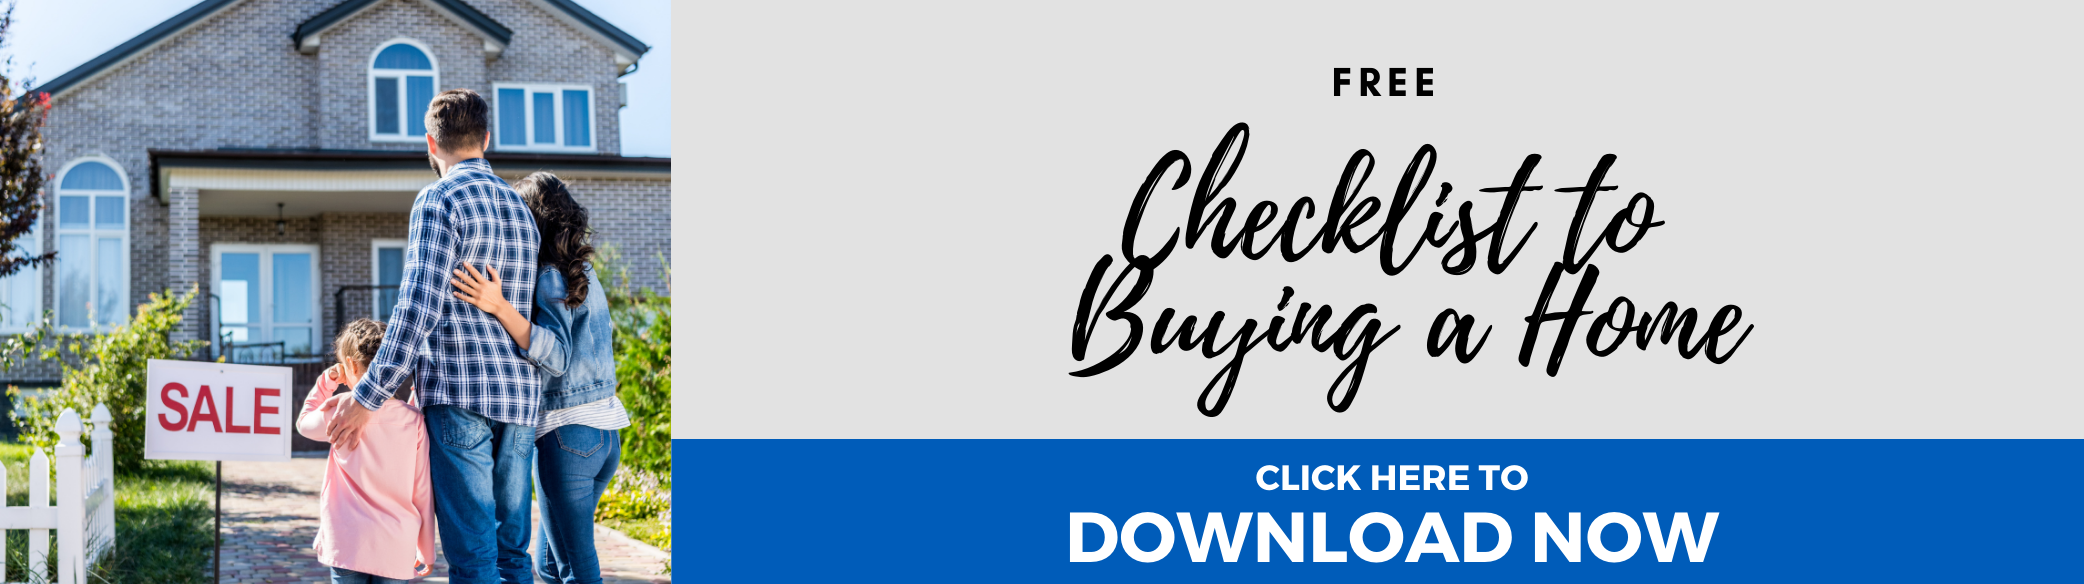 Checklist to Buying a Home